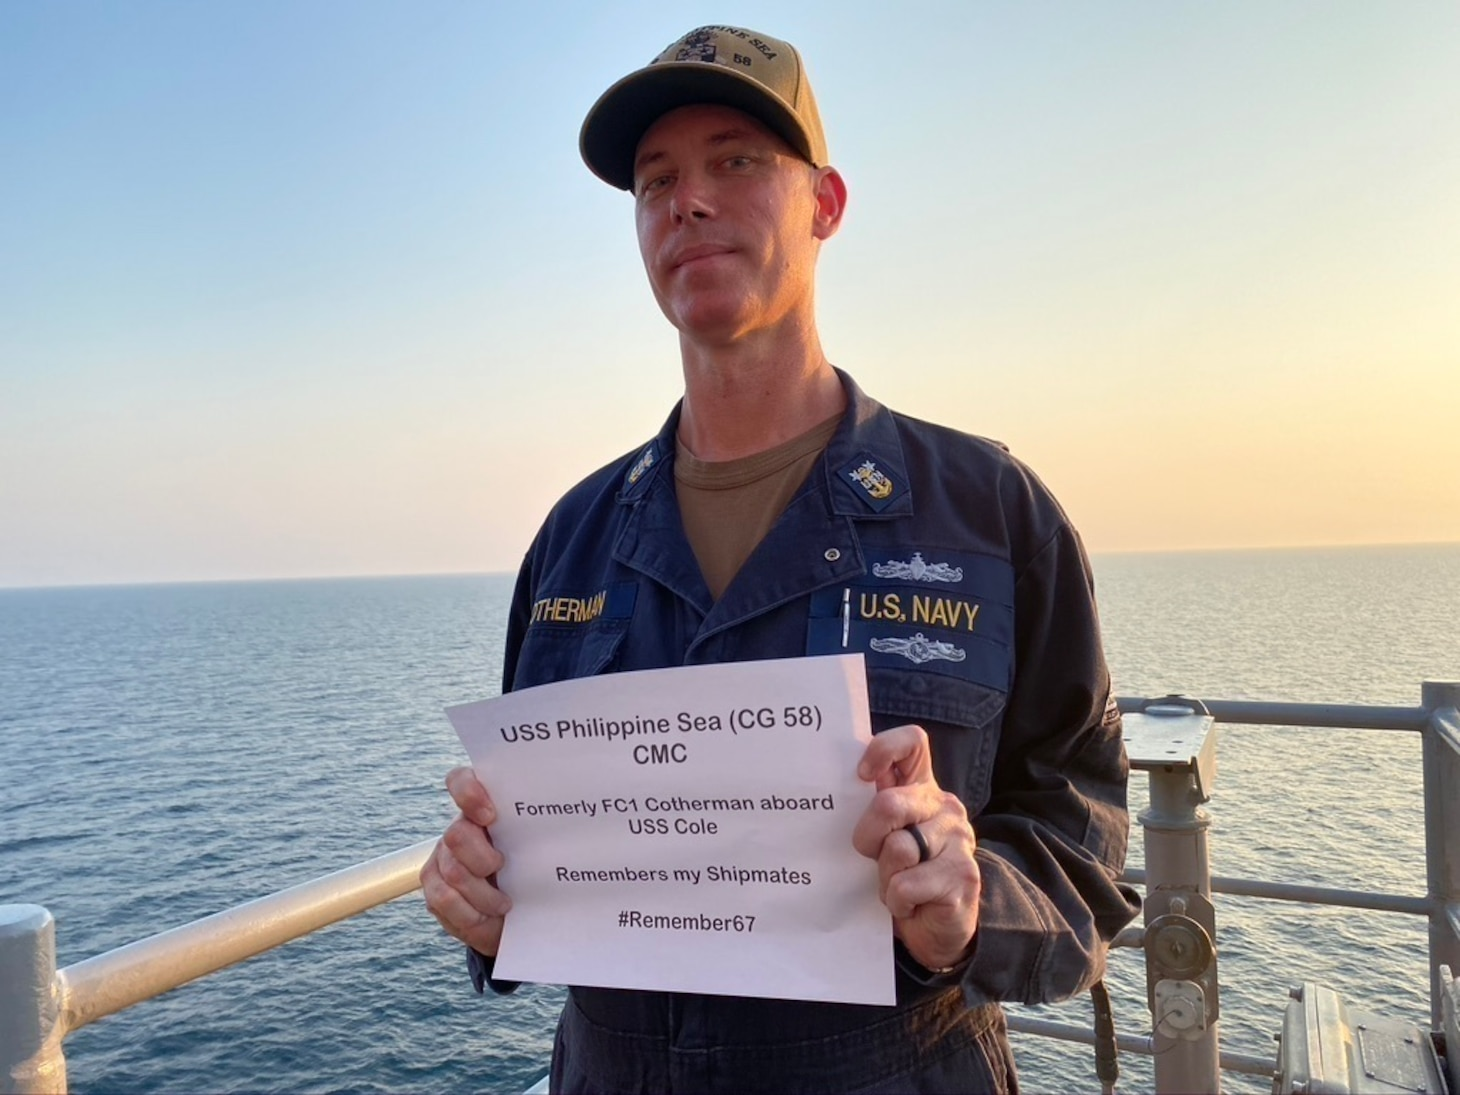 Acting Command Master Chief Aegis Fire Controlman Craig Cotherman, assigned to the guided-missile cruiser USS Philippine Sea (CG 58), honors his shipmates killed when the USS Cole was attacked on Oct. 12, 2000.